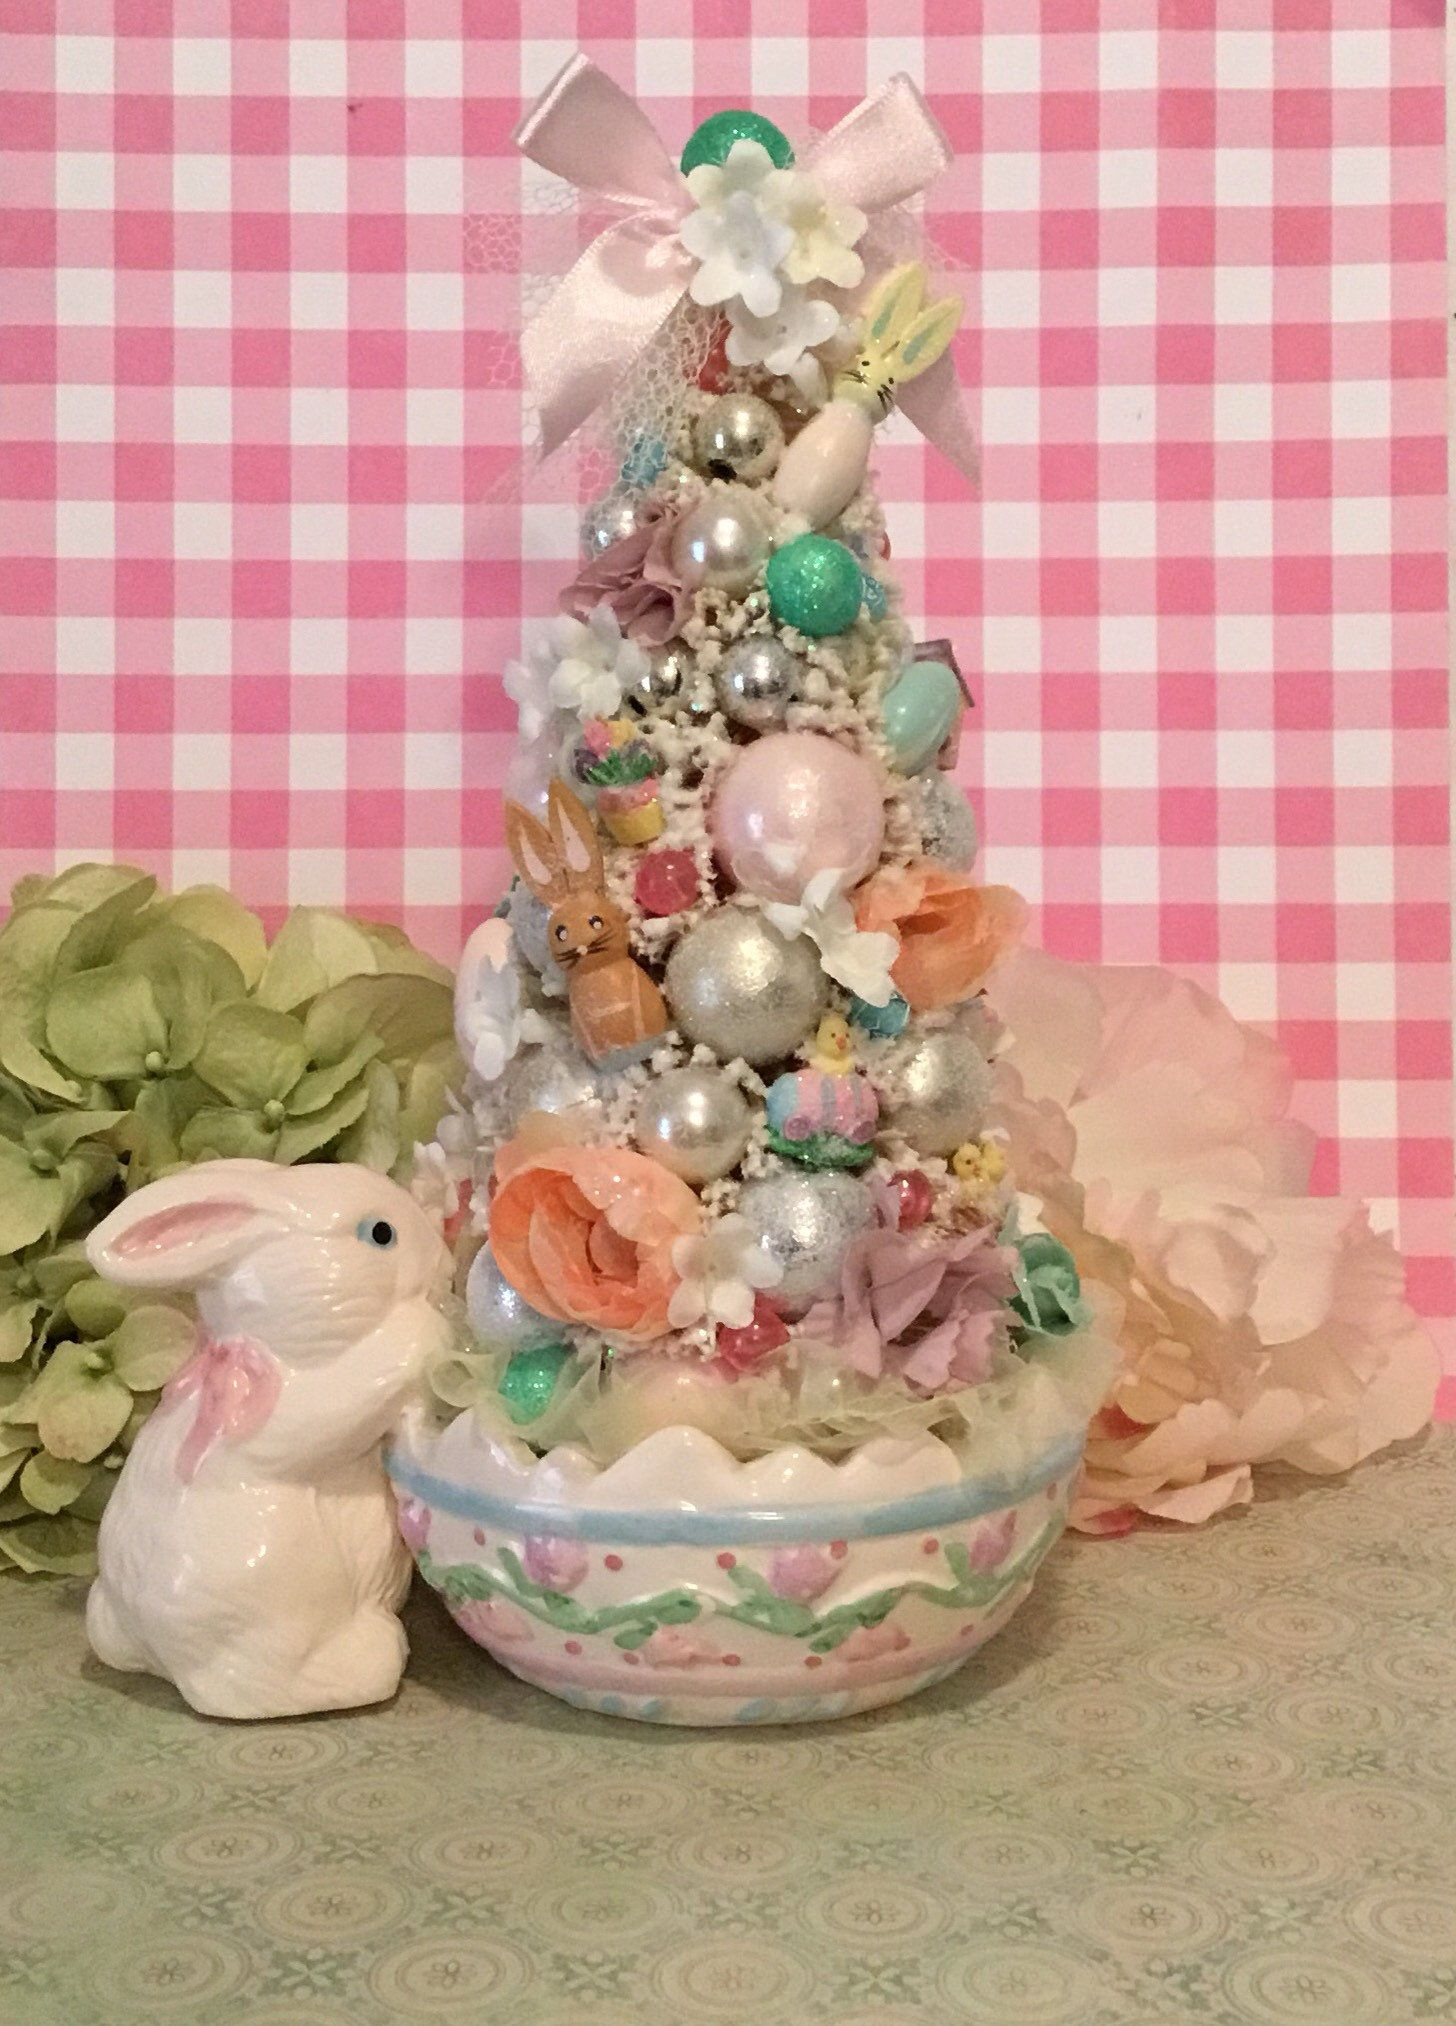 GLITTER EGGS PINK 3NEW EASTER BUNNY RABBIT FILLER TABLE DECORATION w GRASS